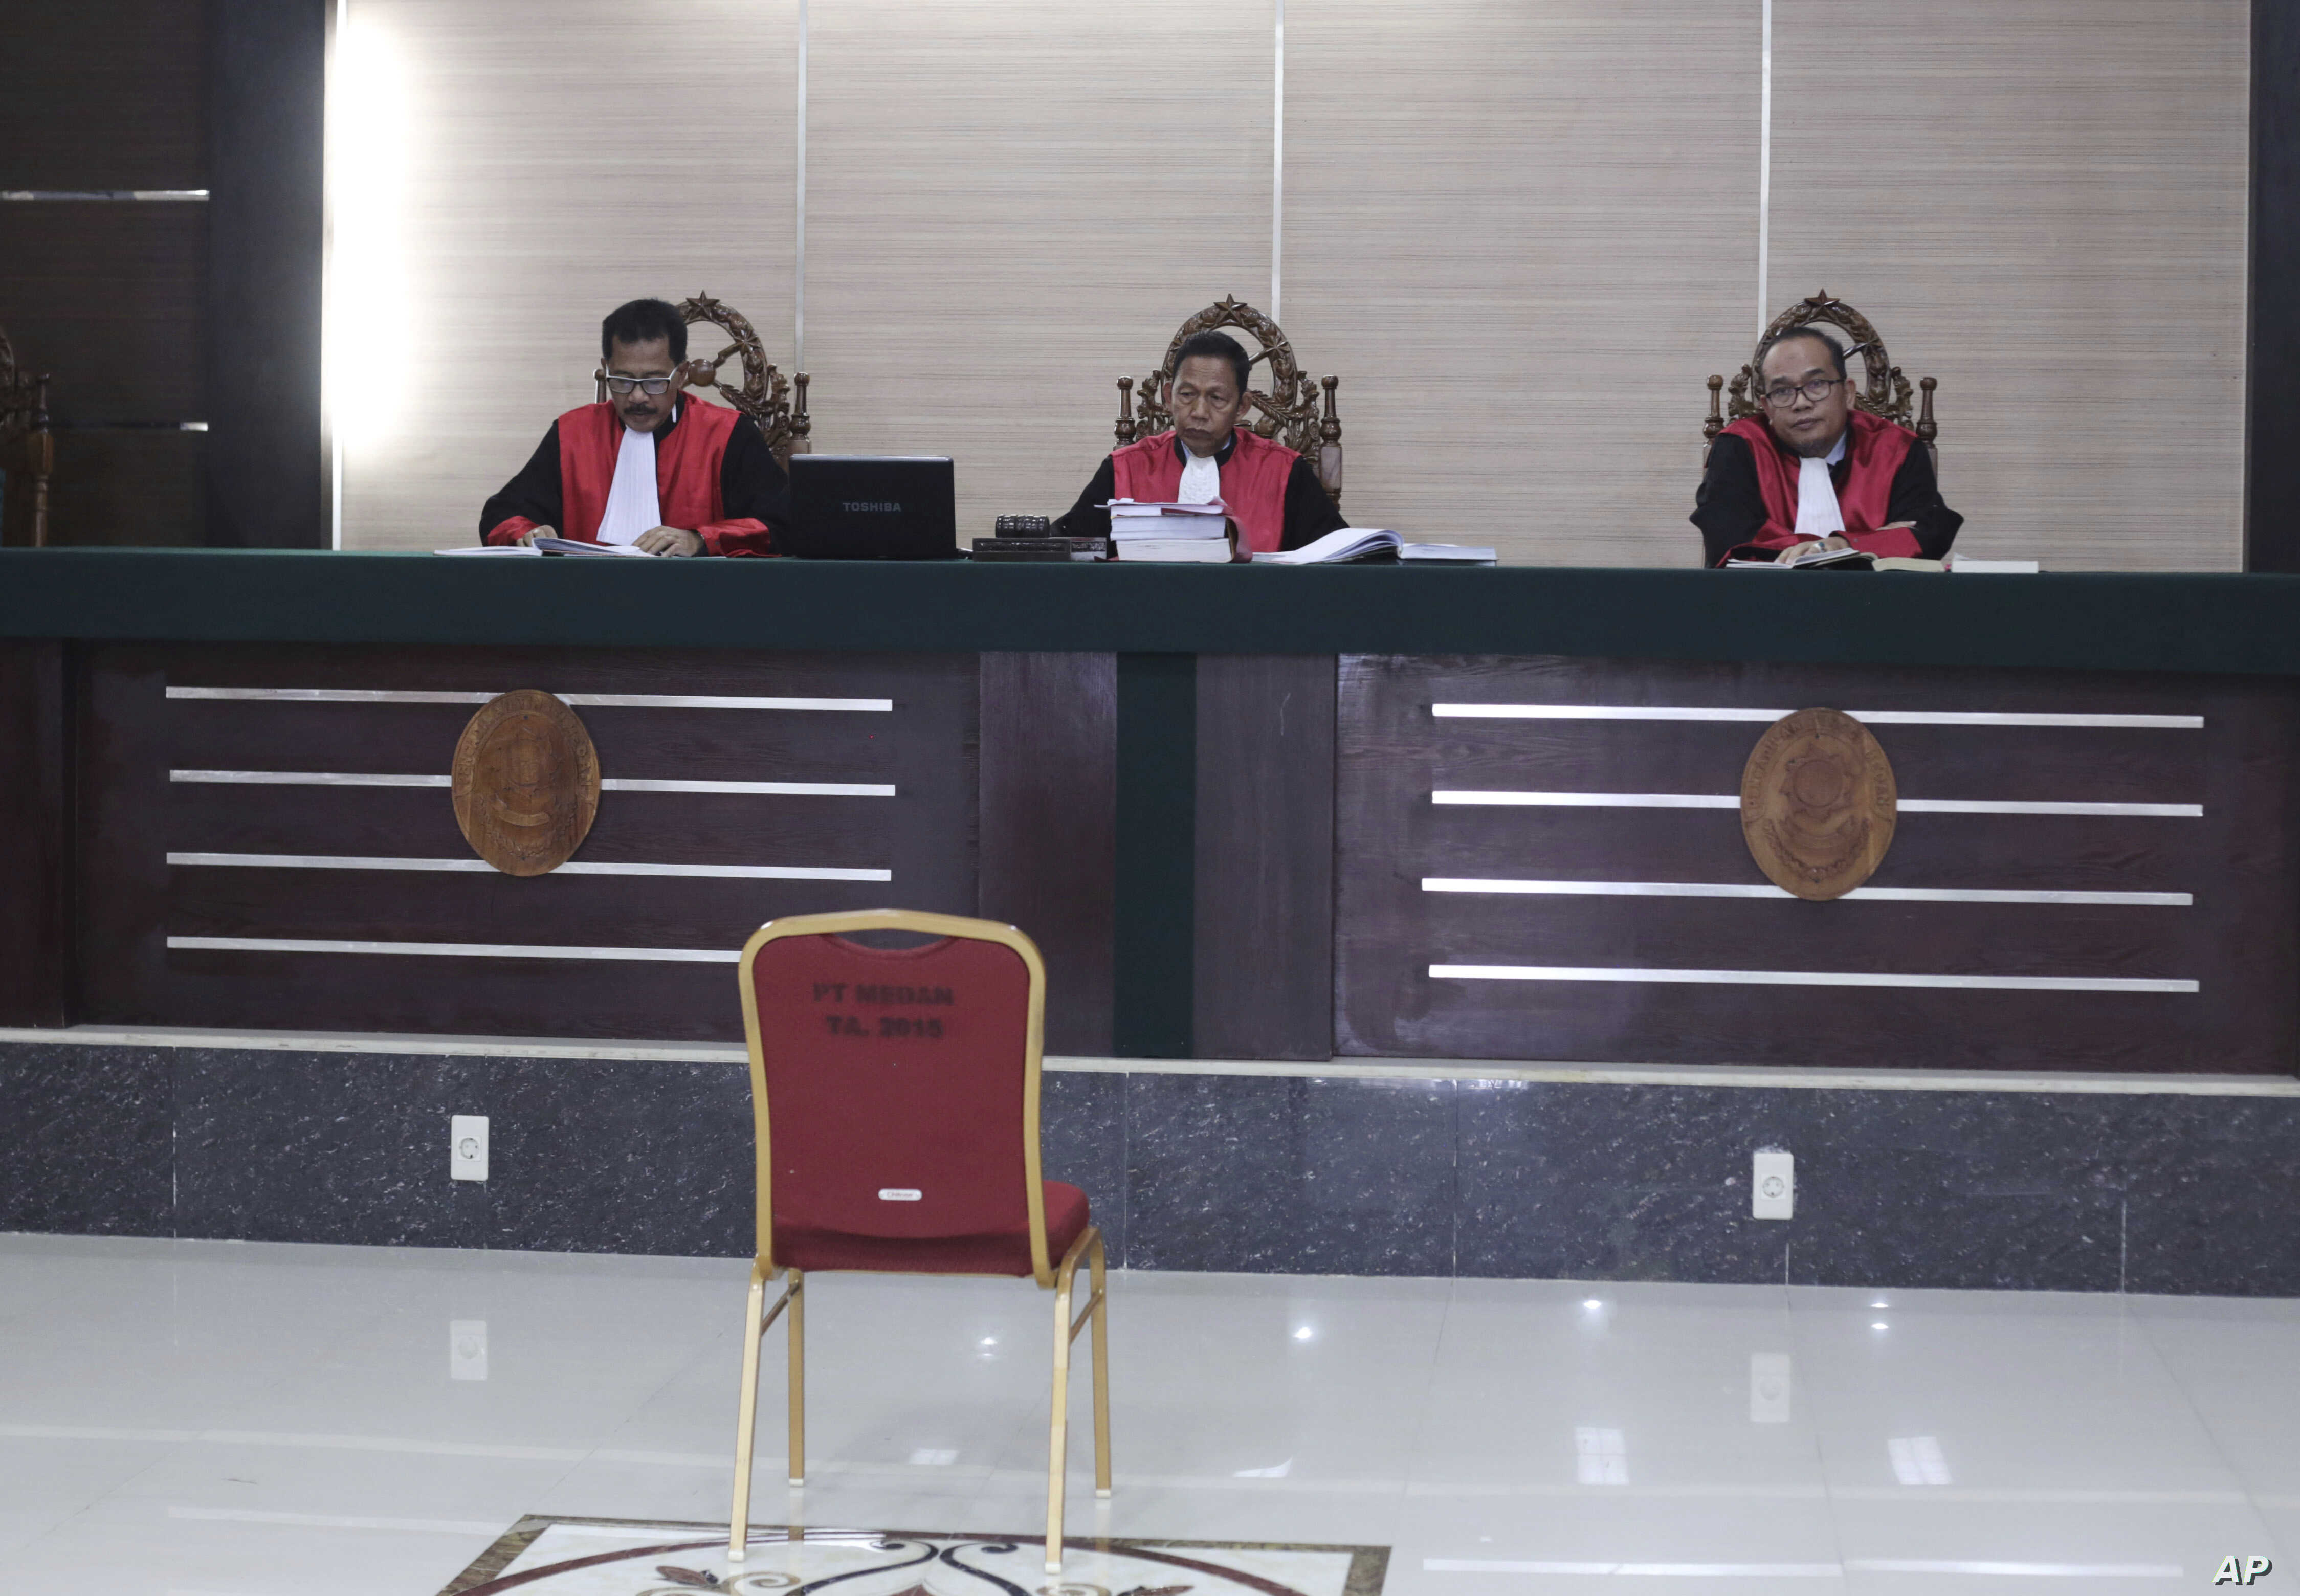 Indonesian judge Daliun Sailan, center, reads the court's decision to uphold an 18-month prison sentence for ethnic Chinese woman Meiliana convicted of blasphemy, at High Court in Medan, North Sumatra, Oct. 25, 2018.